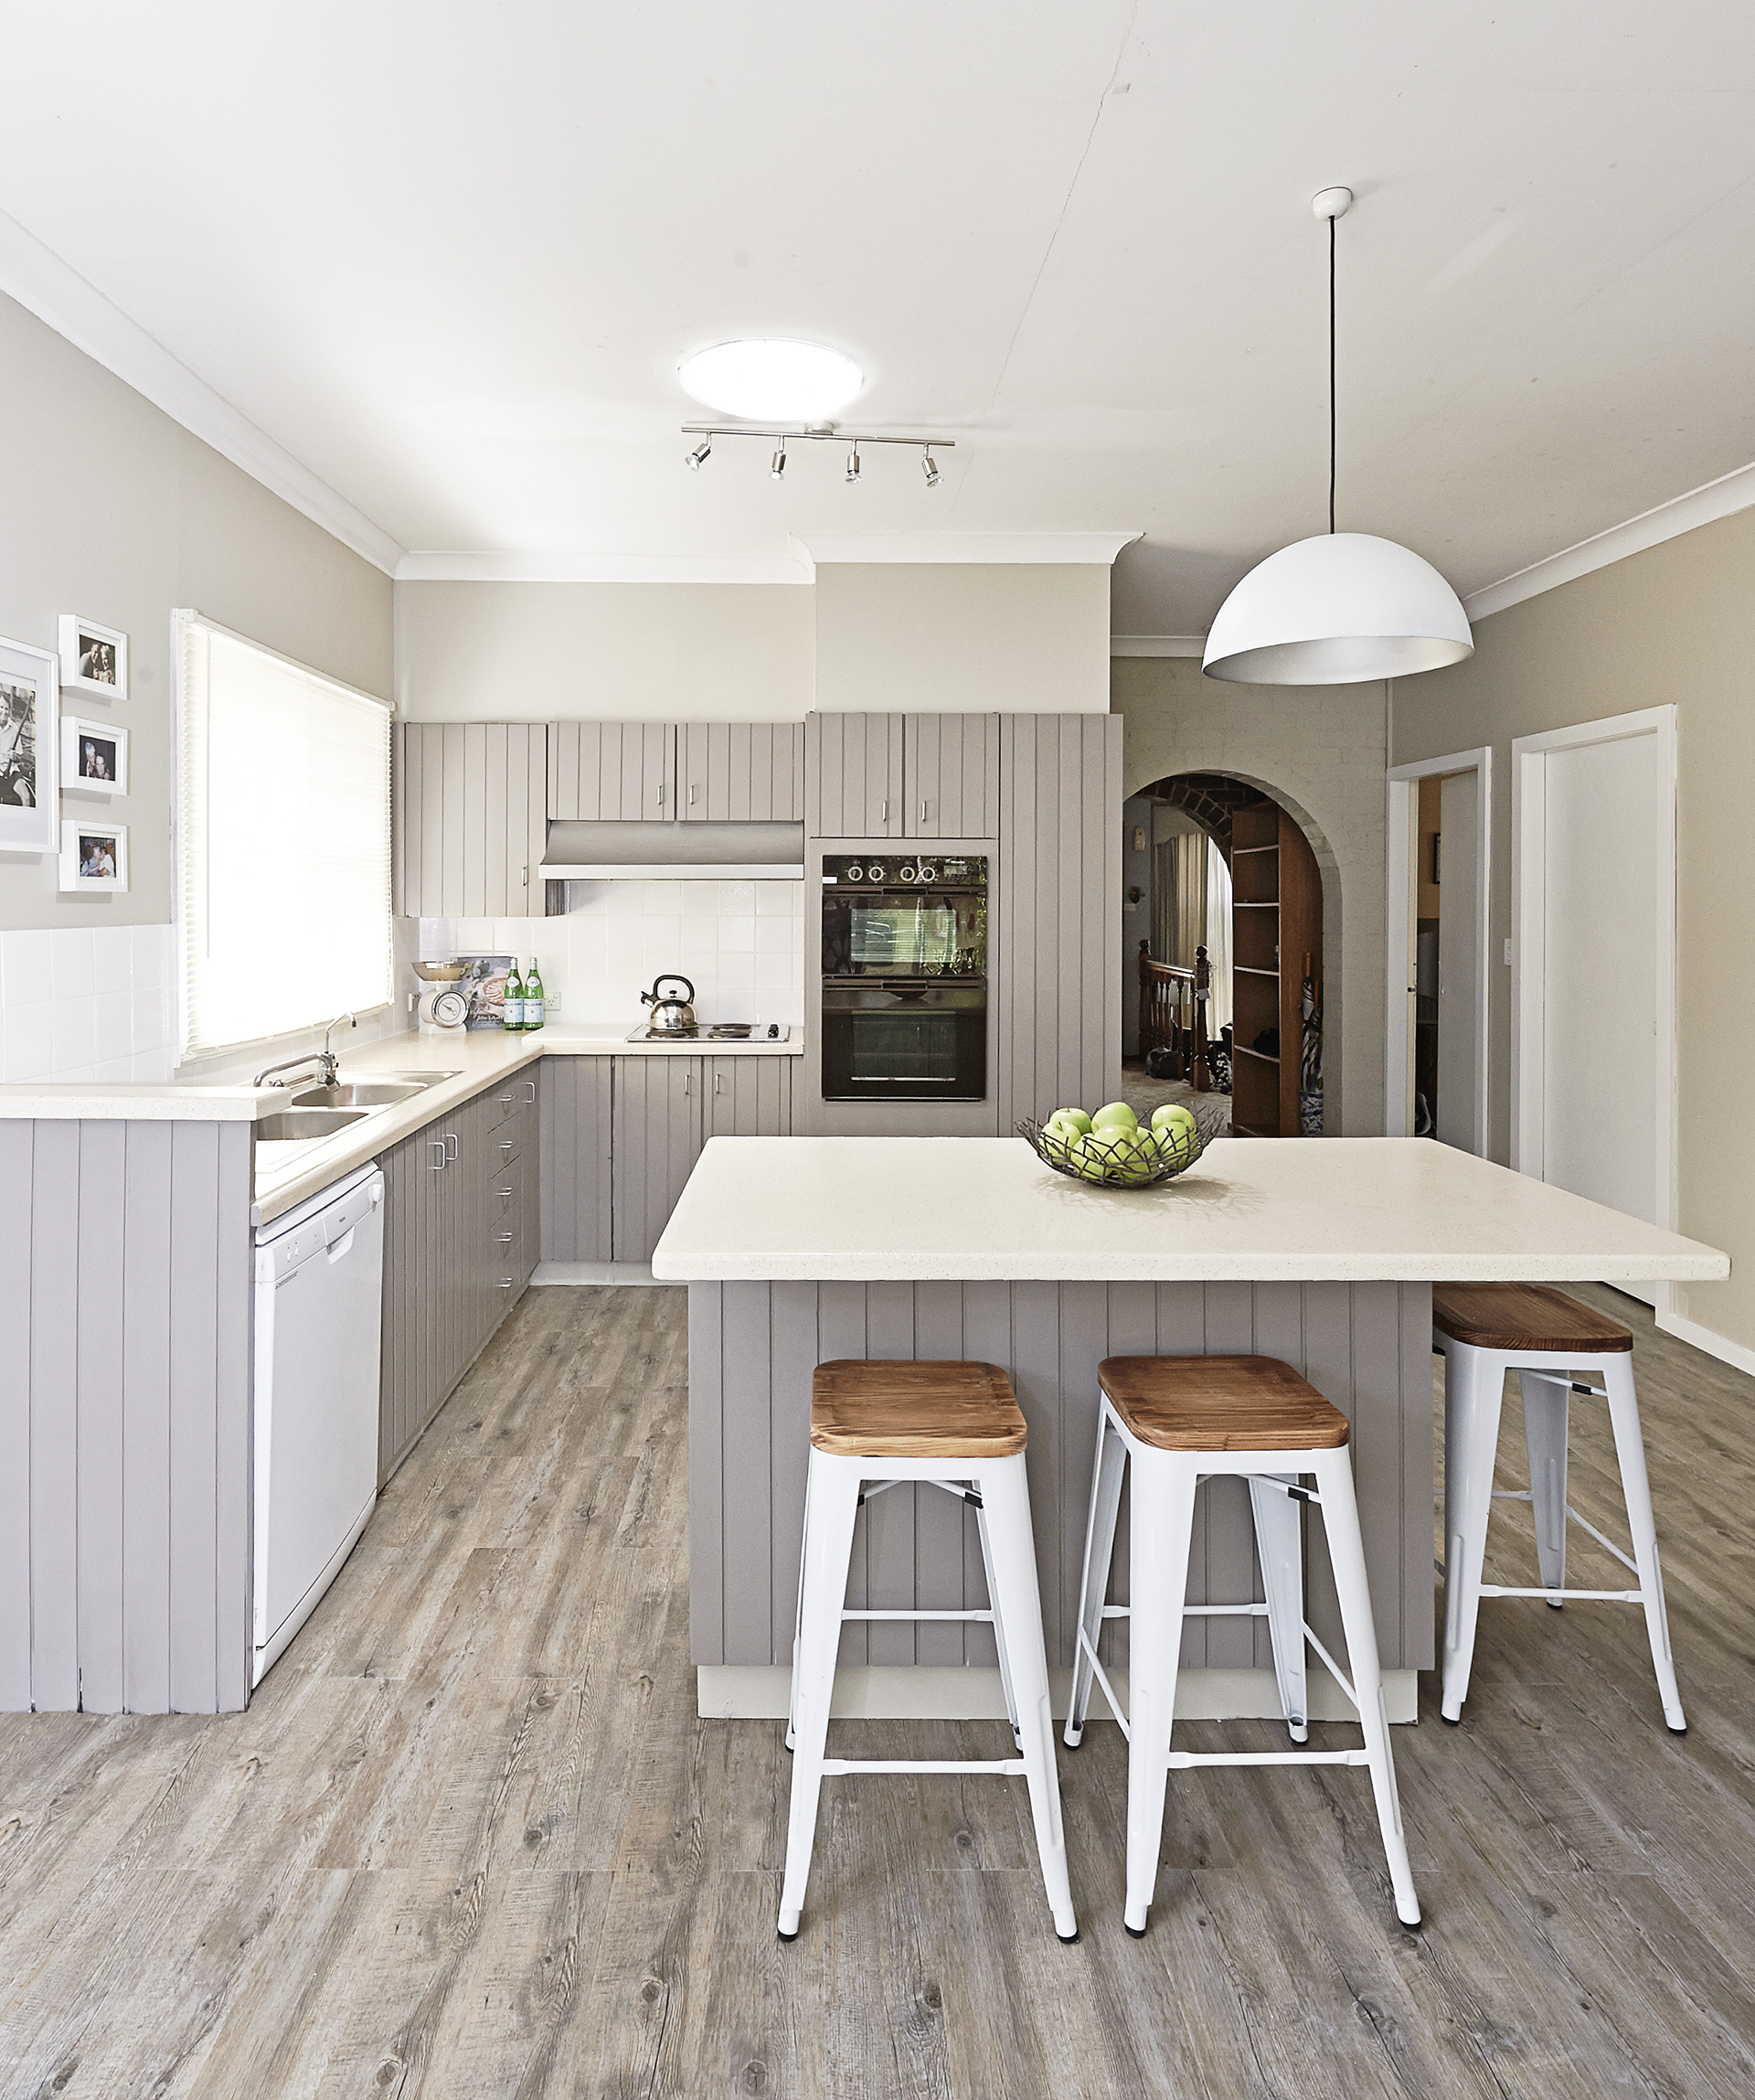 Kitchen Renovation Ideas 5 Budget Savvy Tips Homes To Love